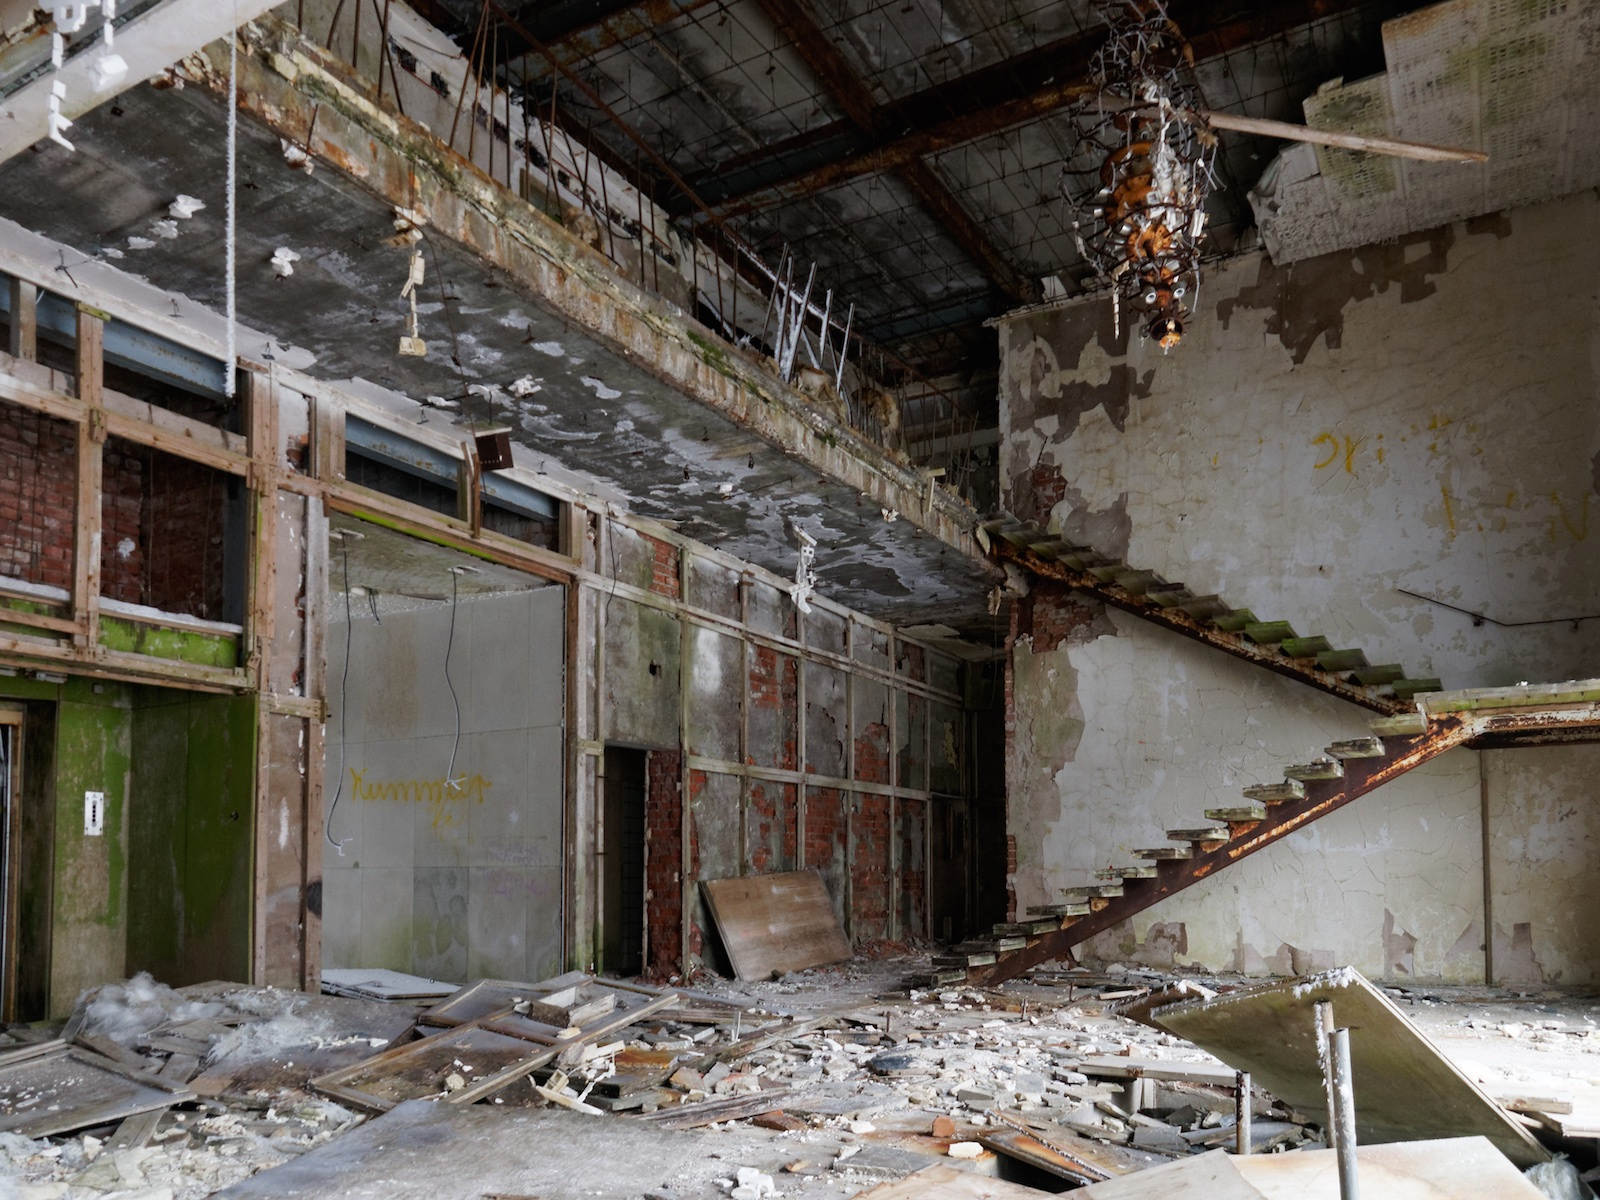 A wall-mounted staircase is all that remains of a once grand foyer